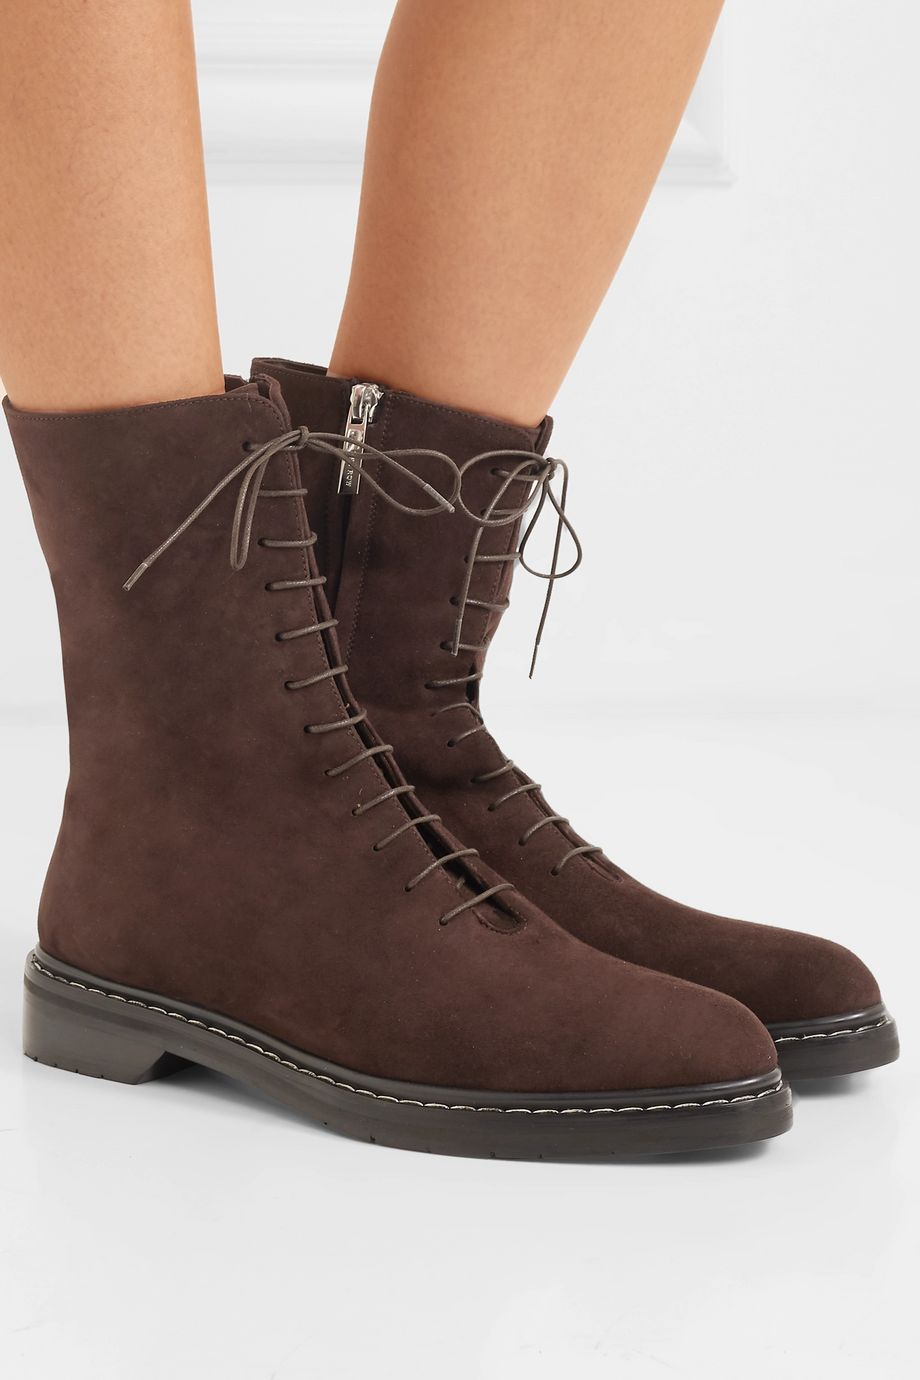 The Row Fara suede ankle boots